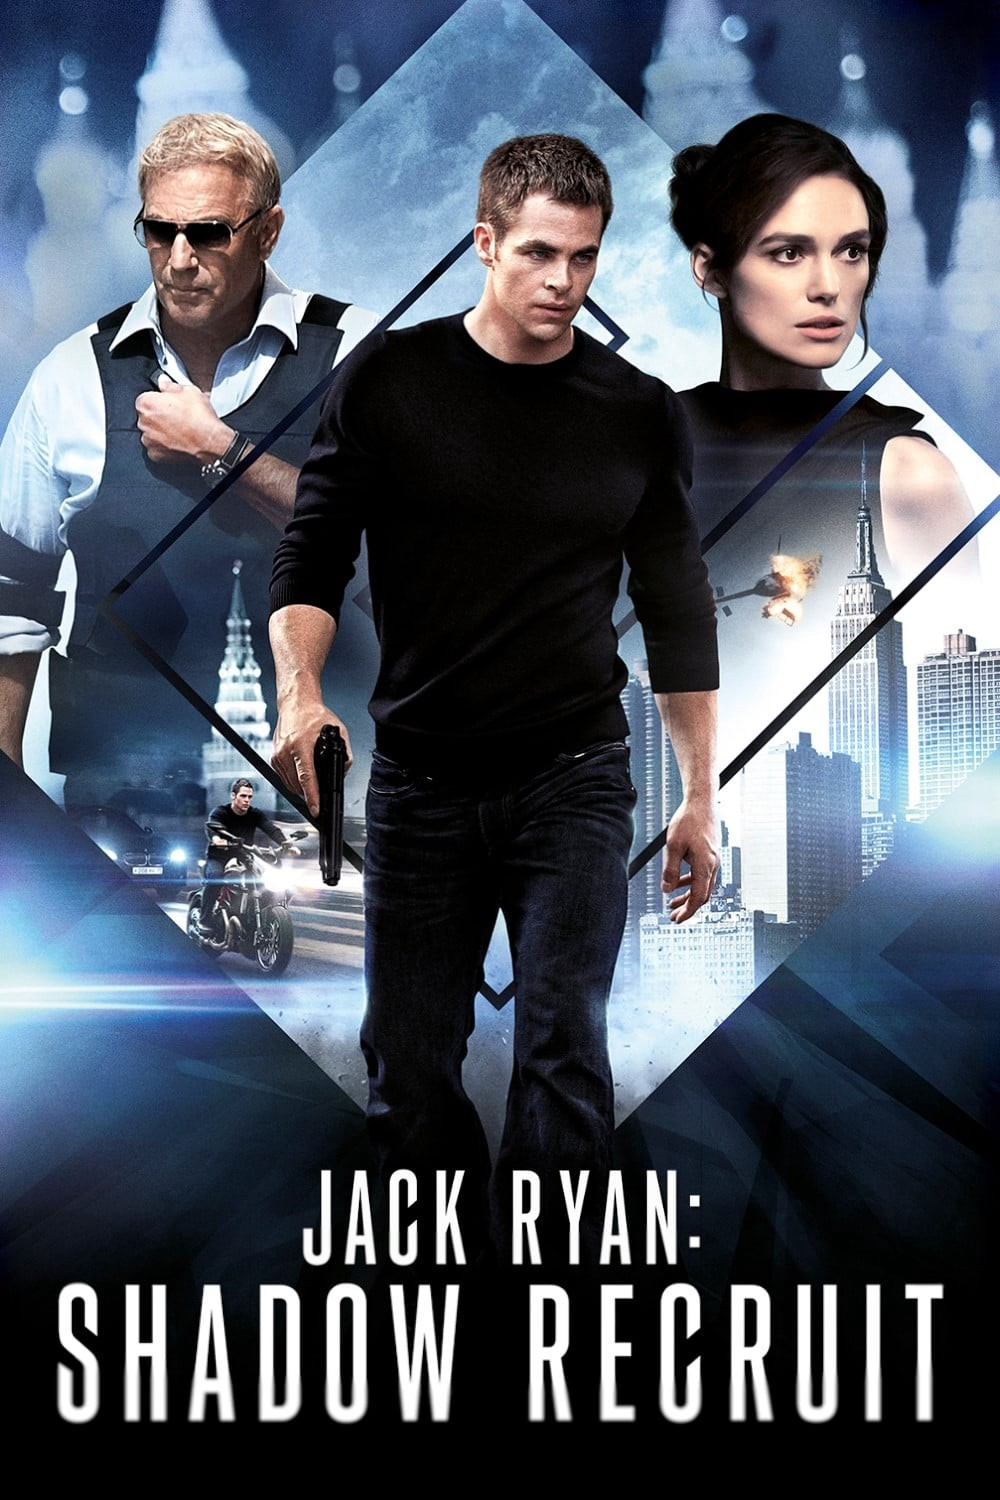 jack ryan full movie online free